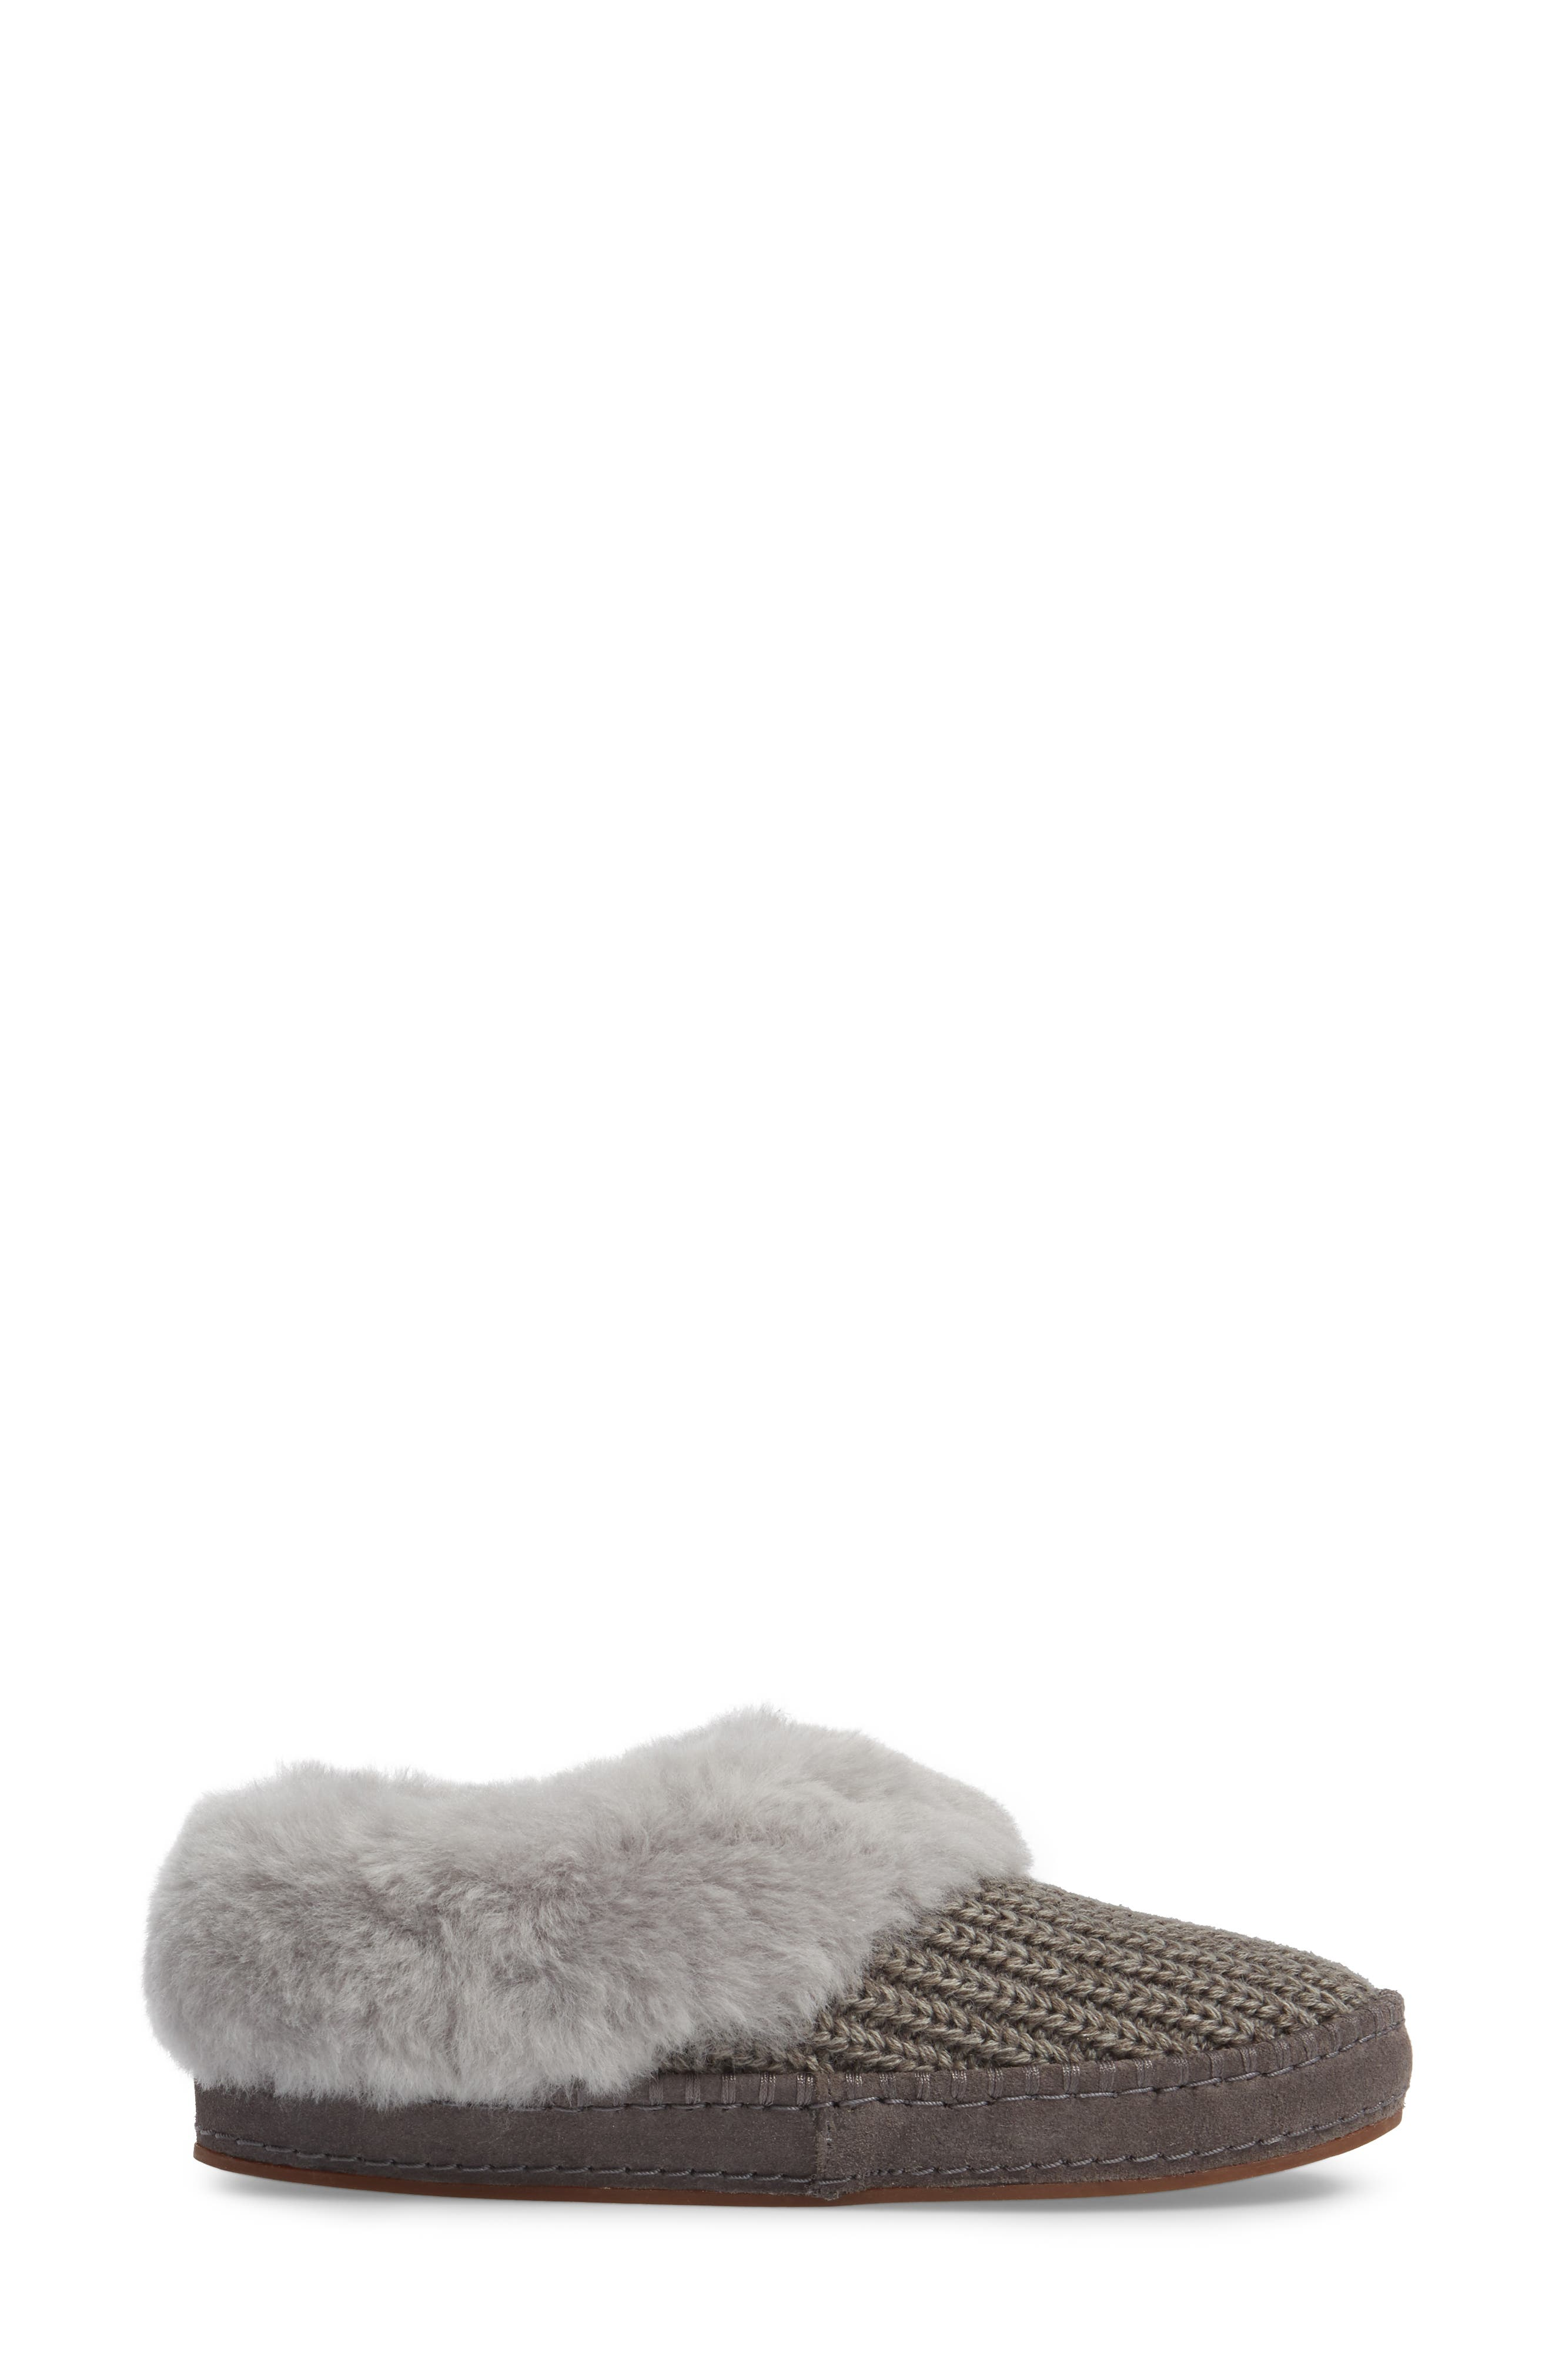 Wrin Rib-Knit & Genuine Shearling Slipper,                             Alternate thumbnail 3, color,                             020